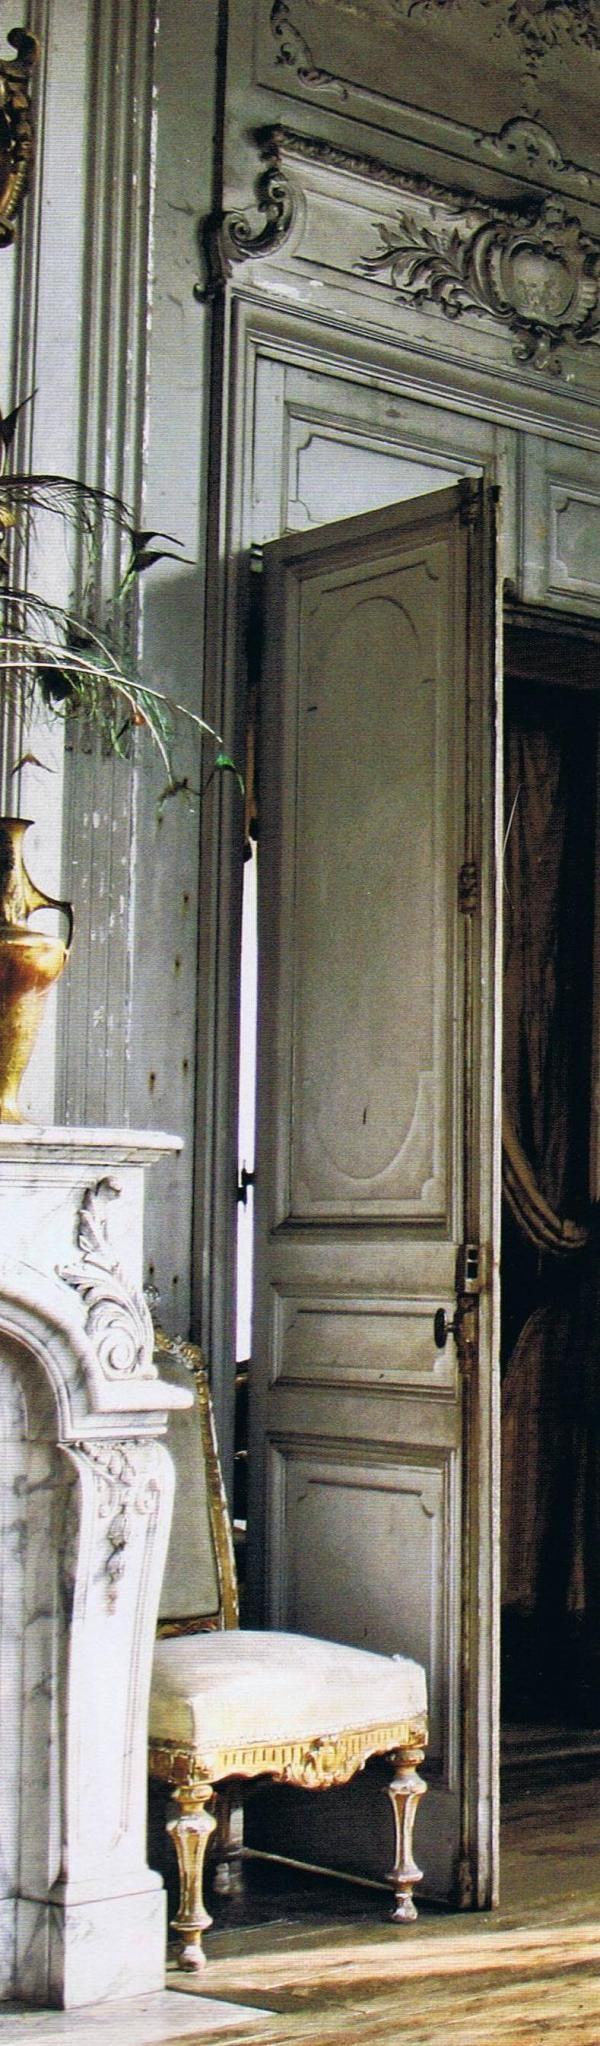 .: French Doors, French Chateau, French Country, Beautiful Doors, Living Australia, House, Lovely Tall